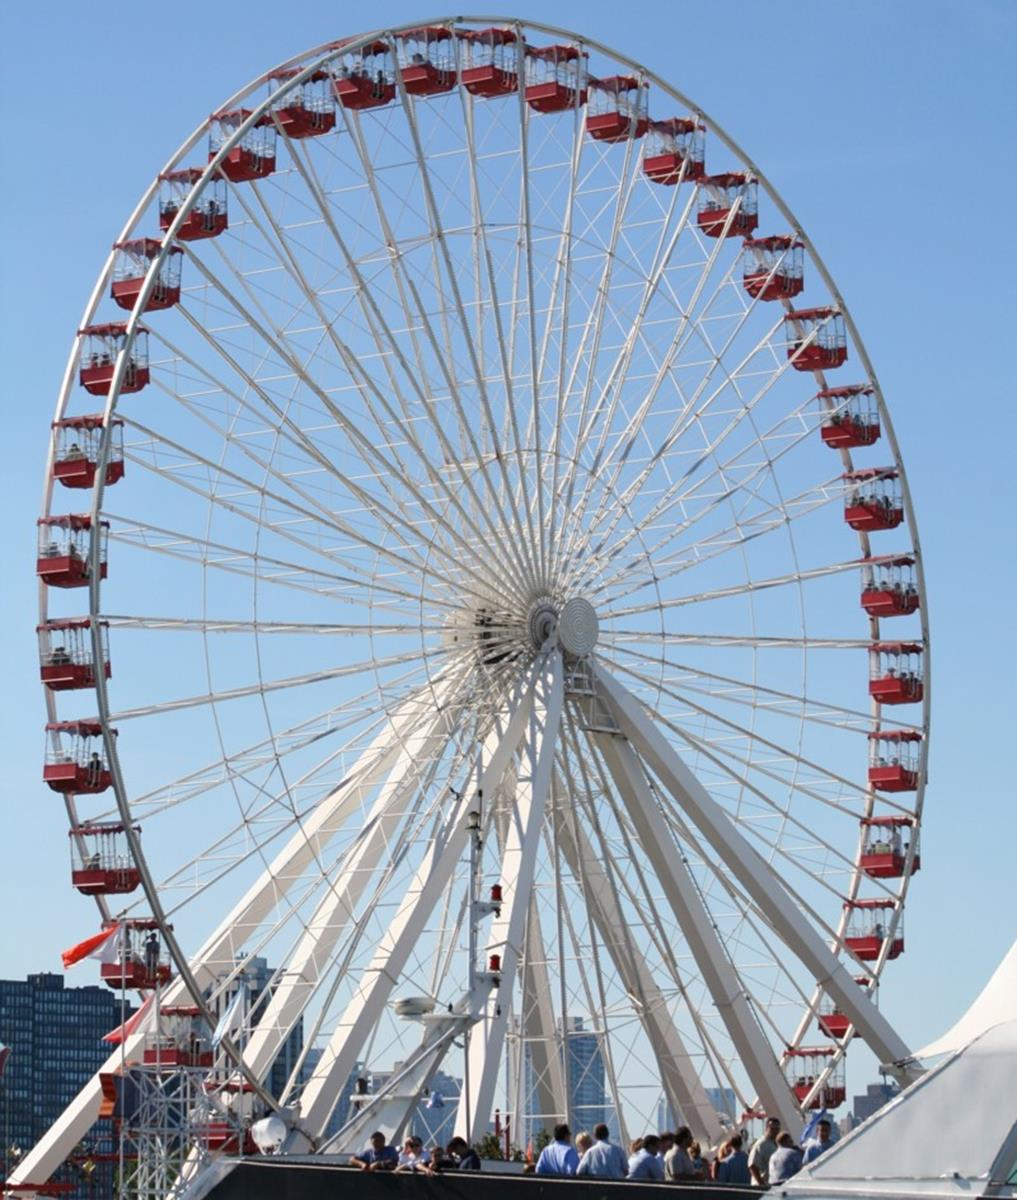 Giant Wheel @ Navy Pier. Credit